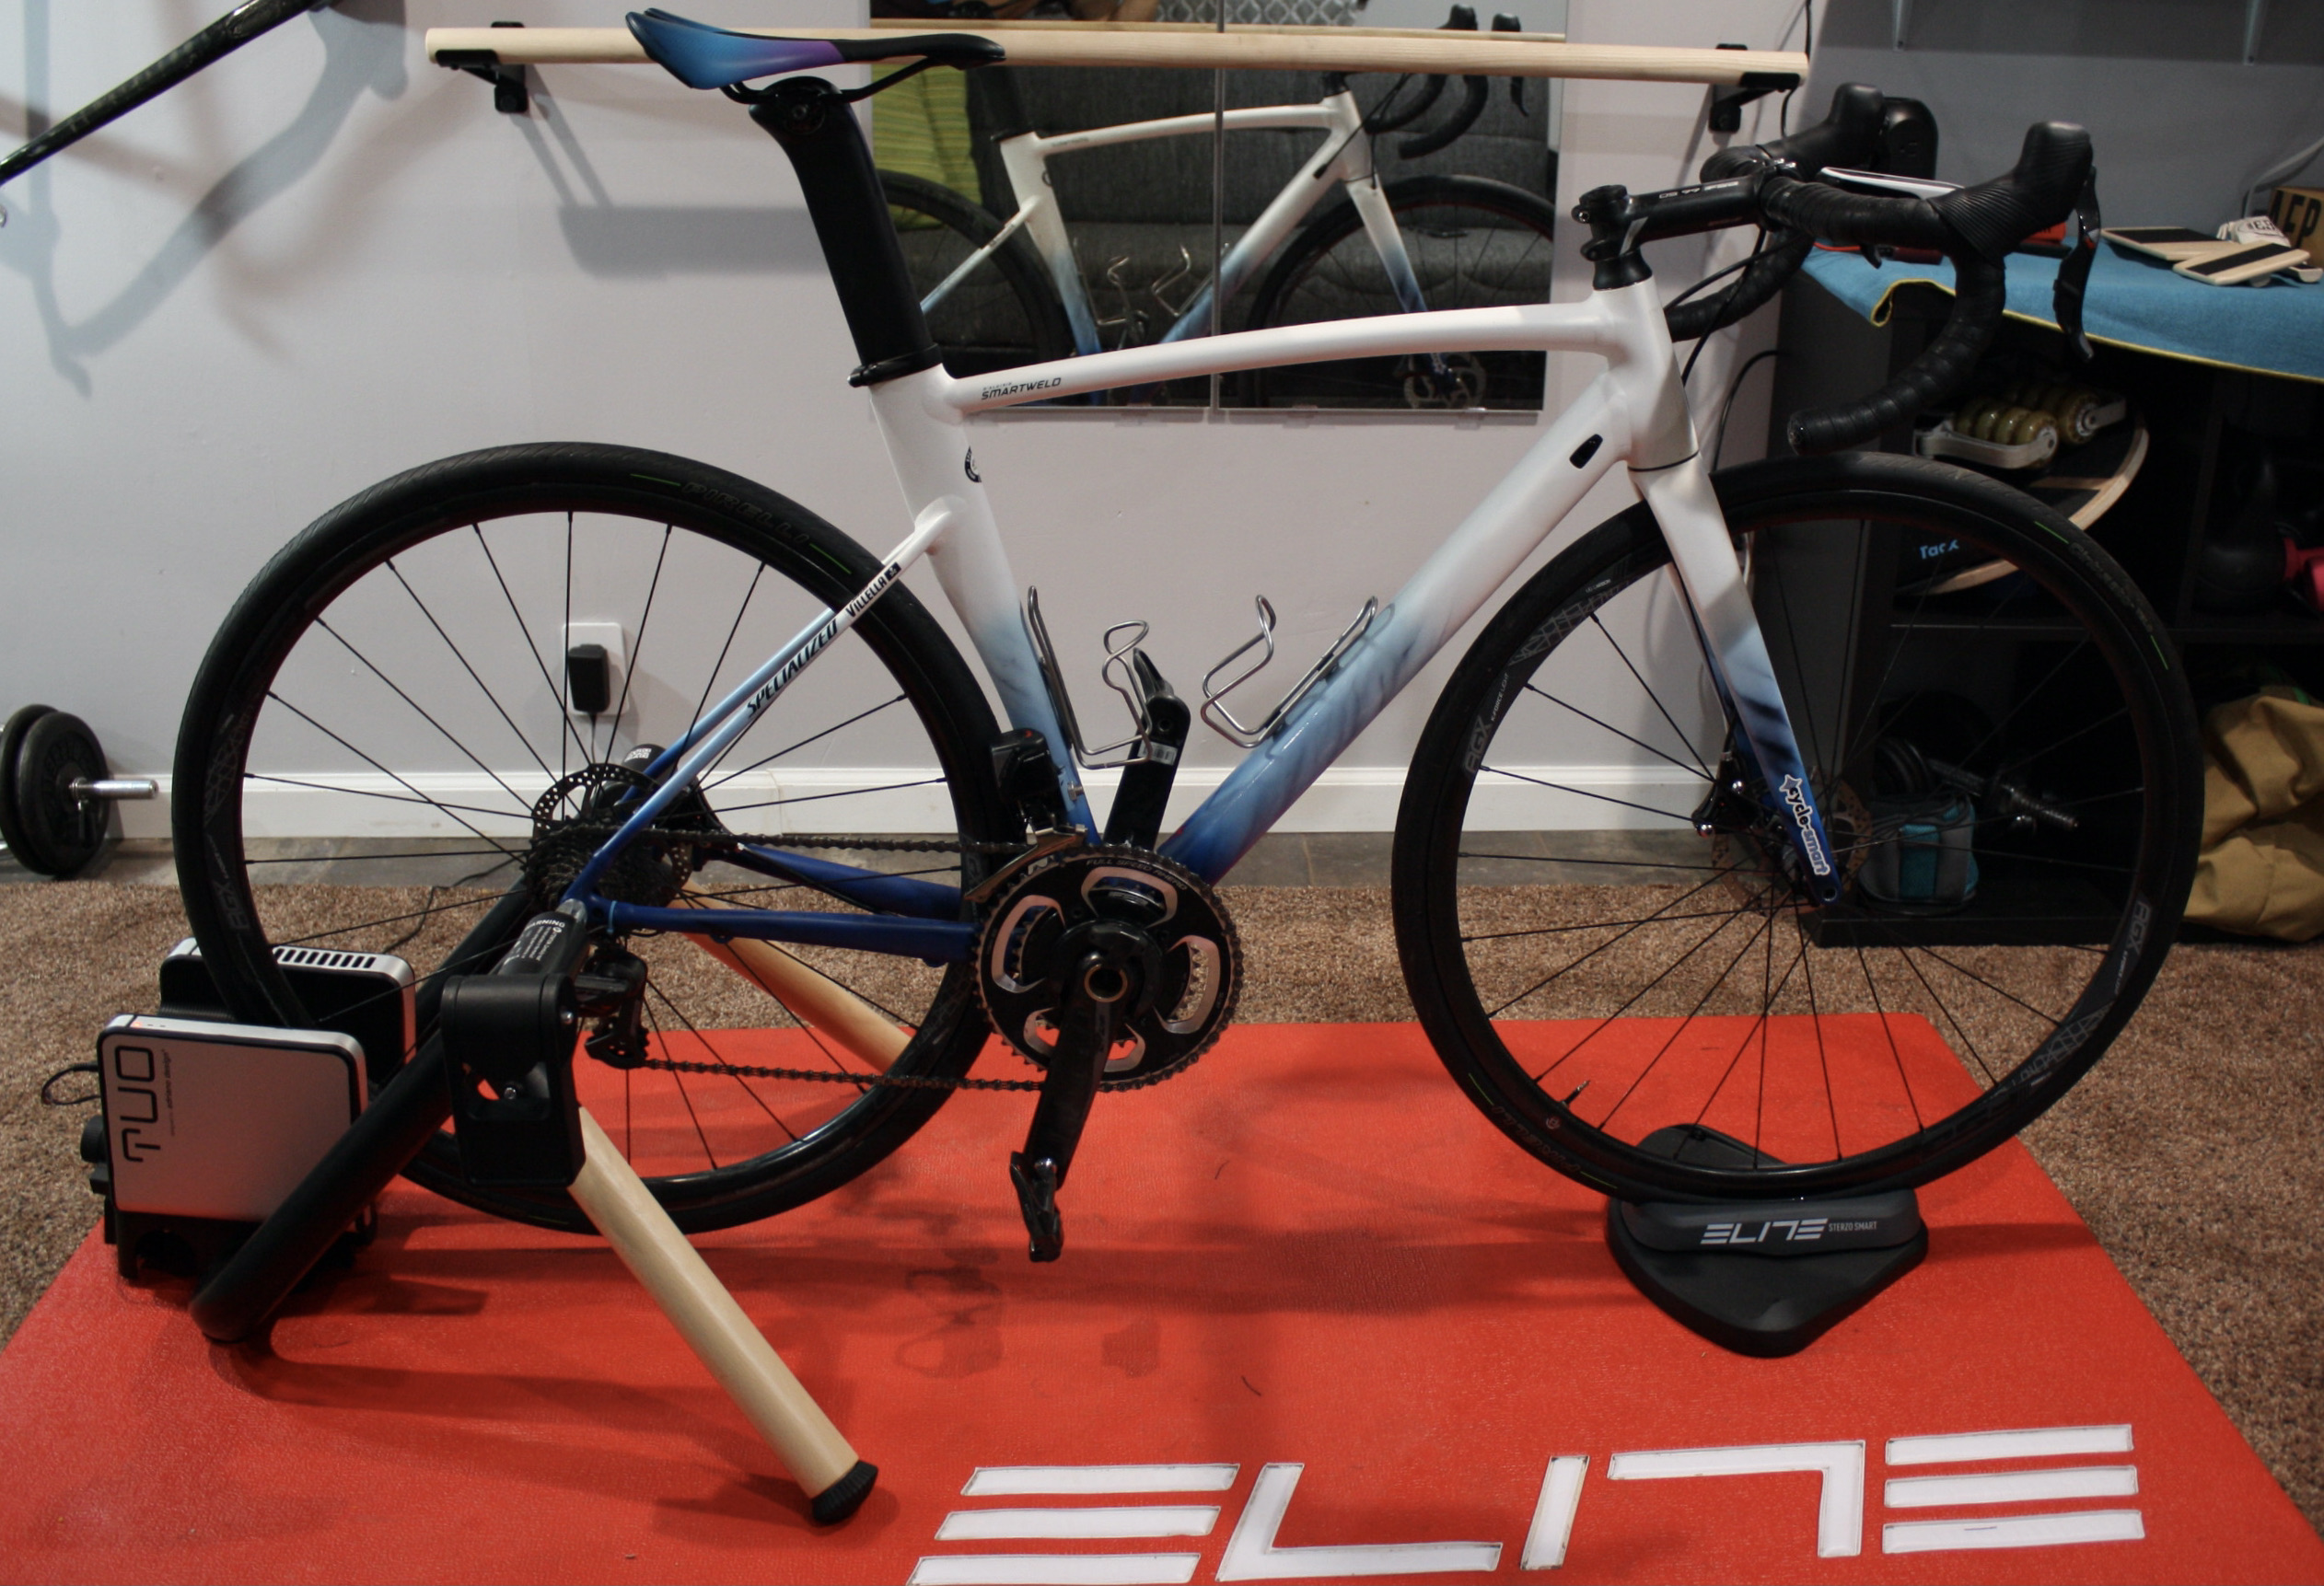 Elite Tuo Trainer Review full view